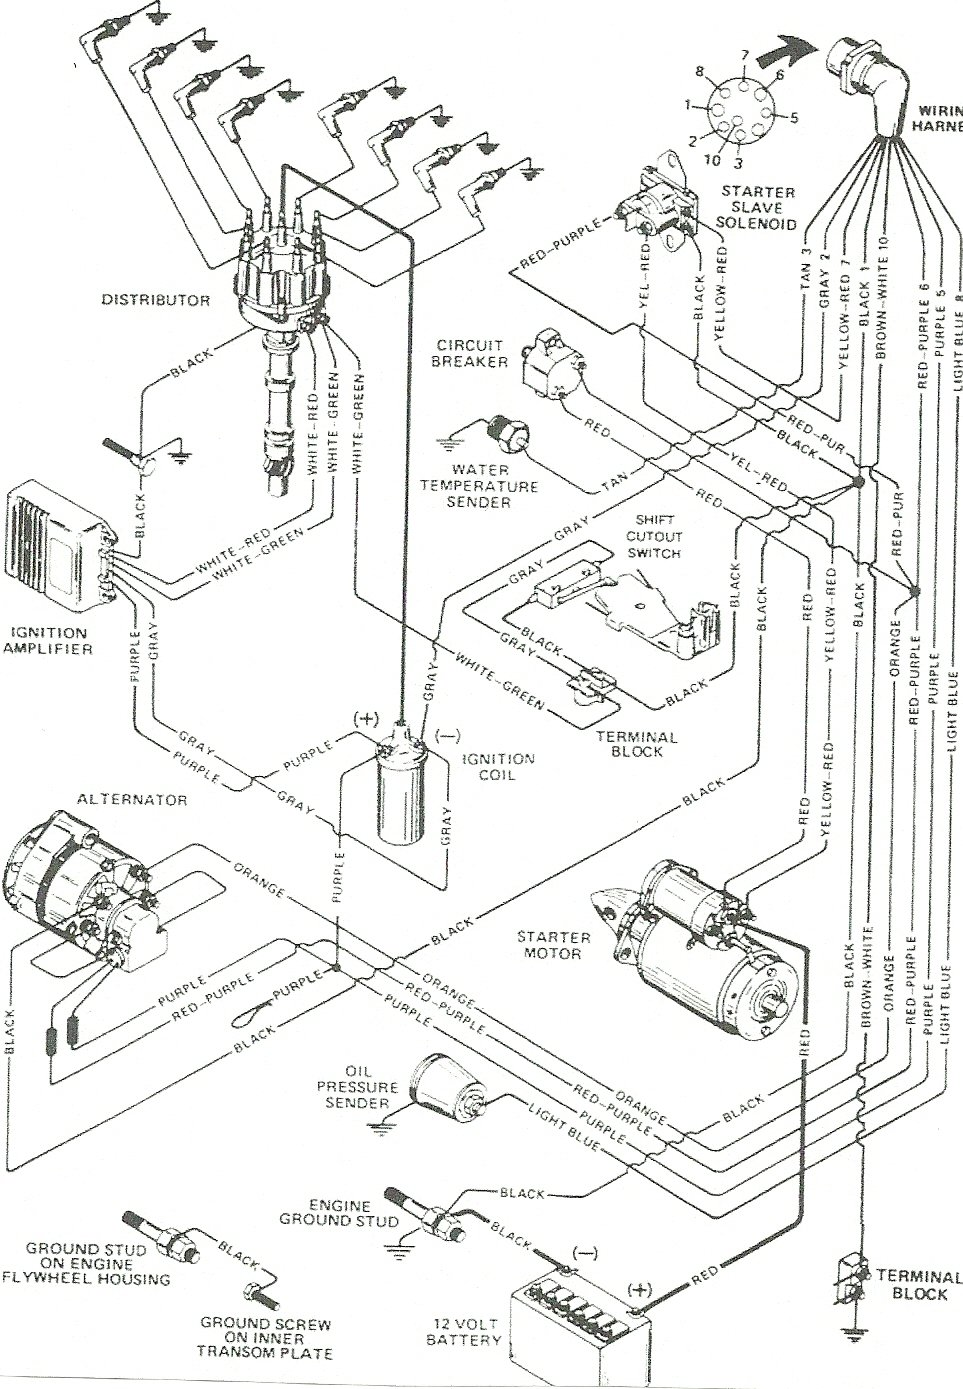 4 3 marine engine diagram get free image about wiring diagram